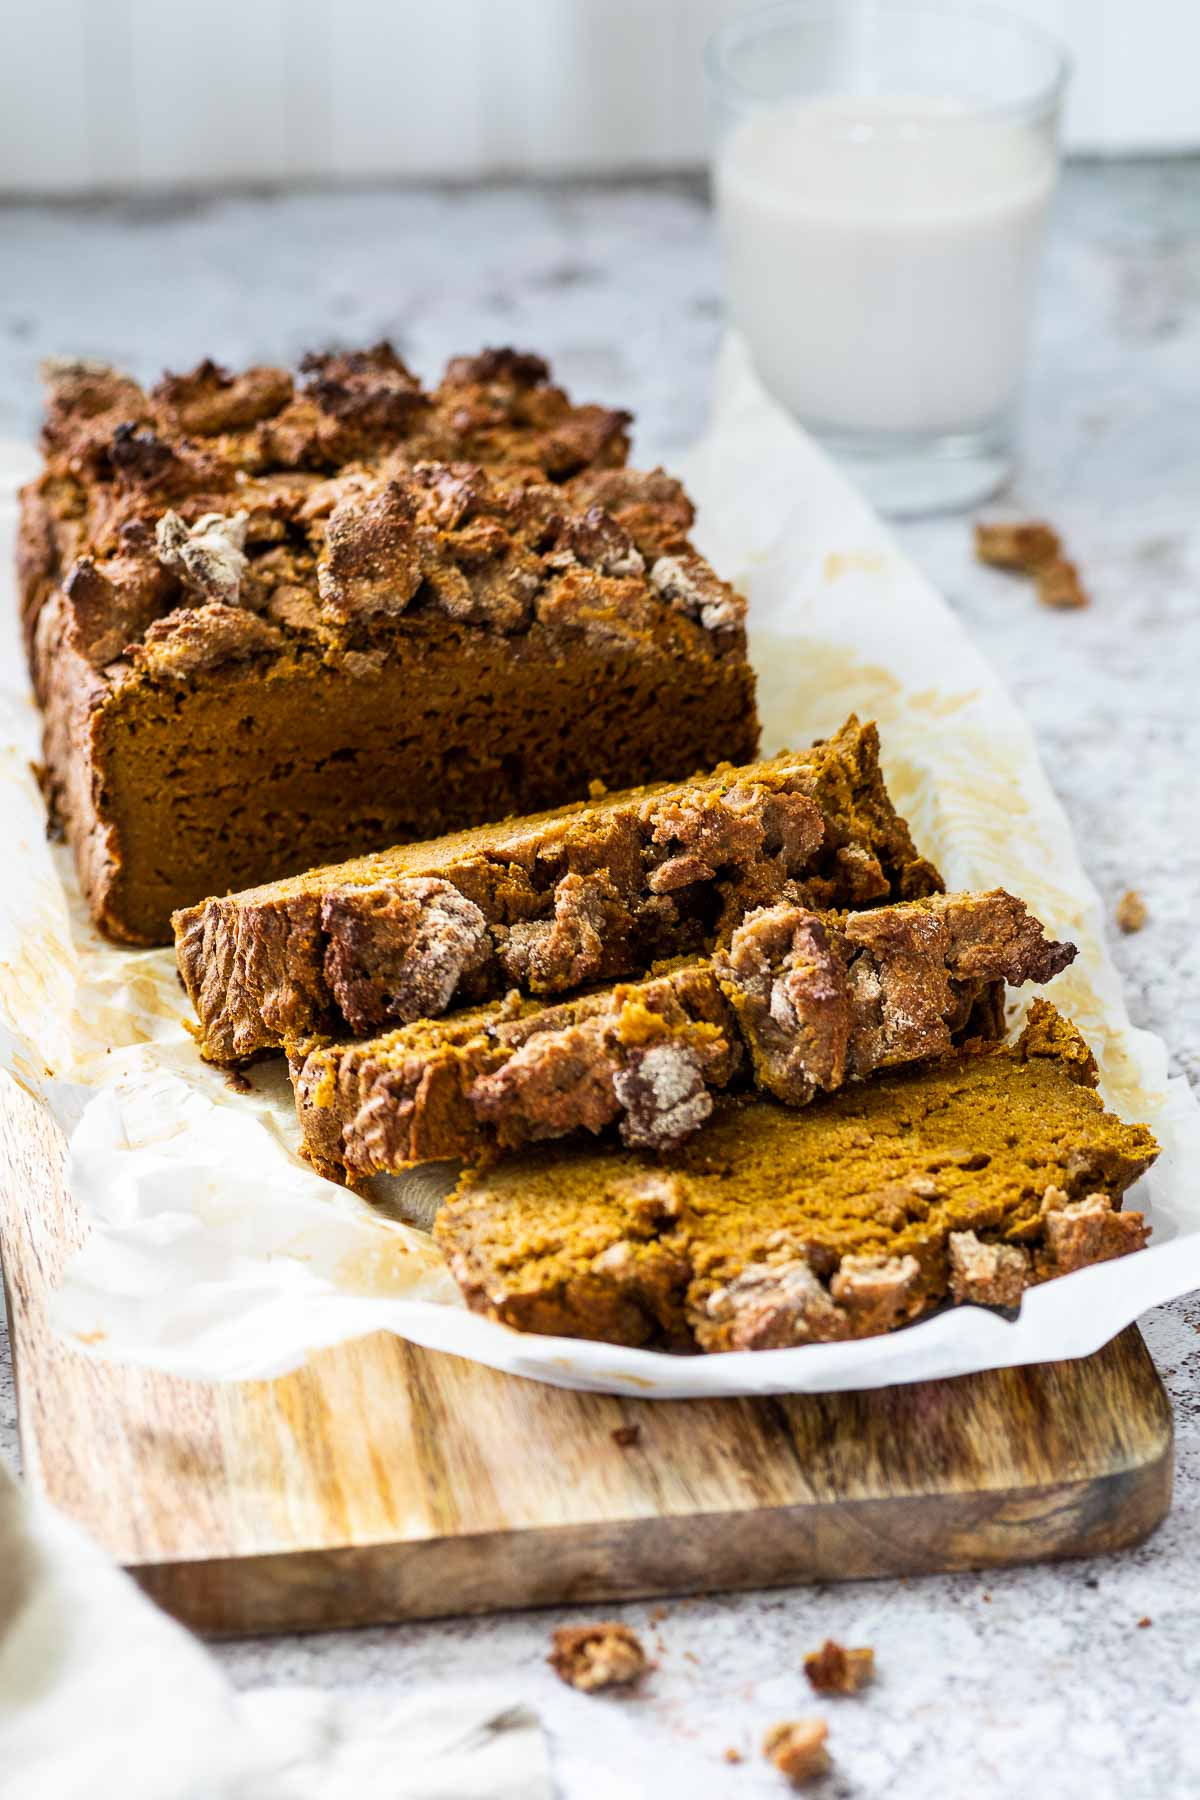 Vegan Pumpkin Bread served on a wooden board with 3 slices.